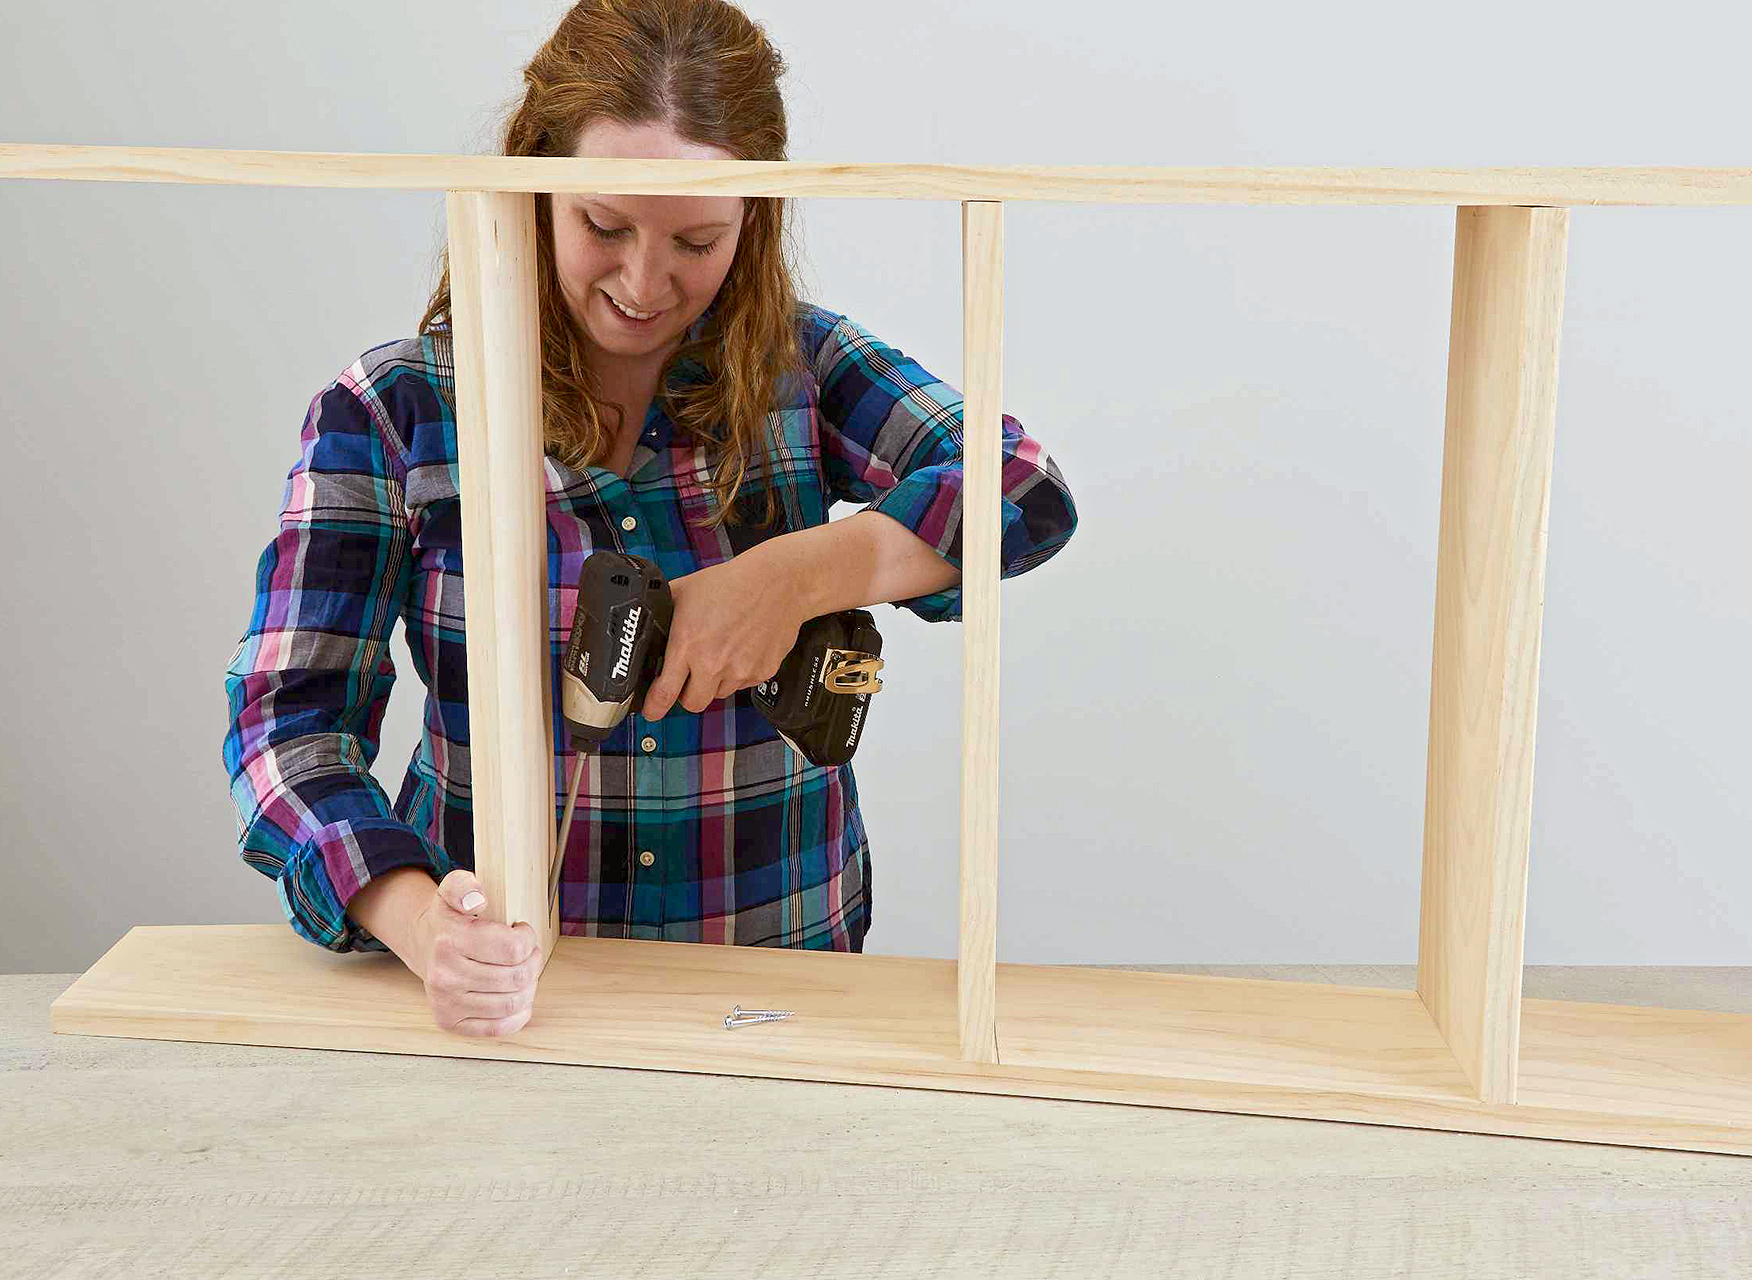 use screwdriver to attach ladder steps